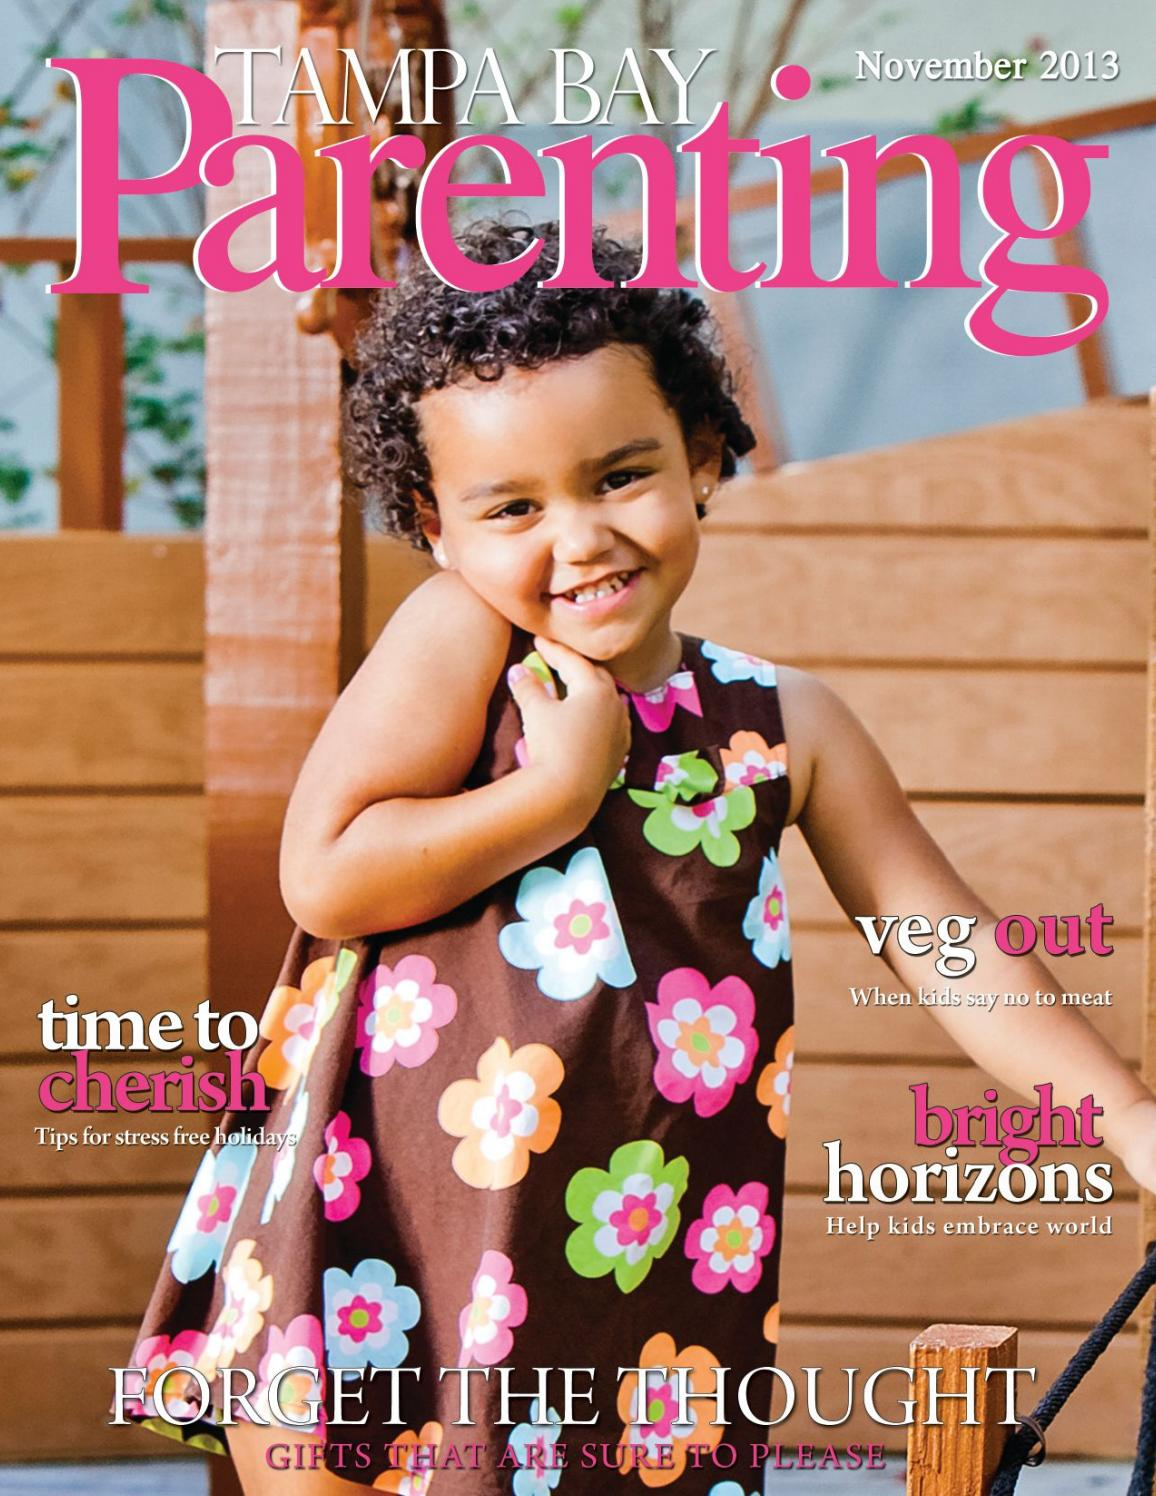 b708d425286f7 November 2013 by Tampa Bay Parenting Magazine - issuu